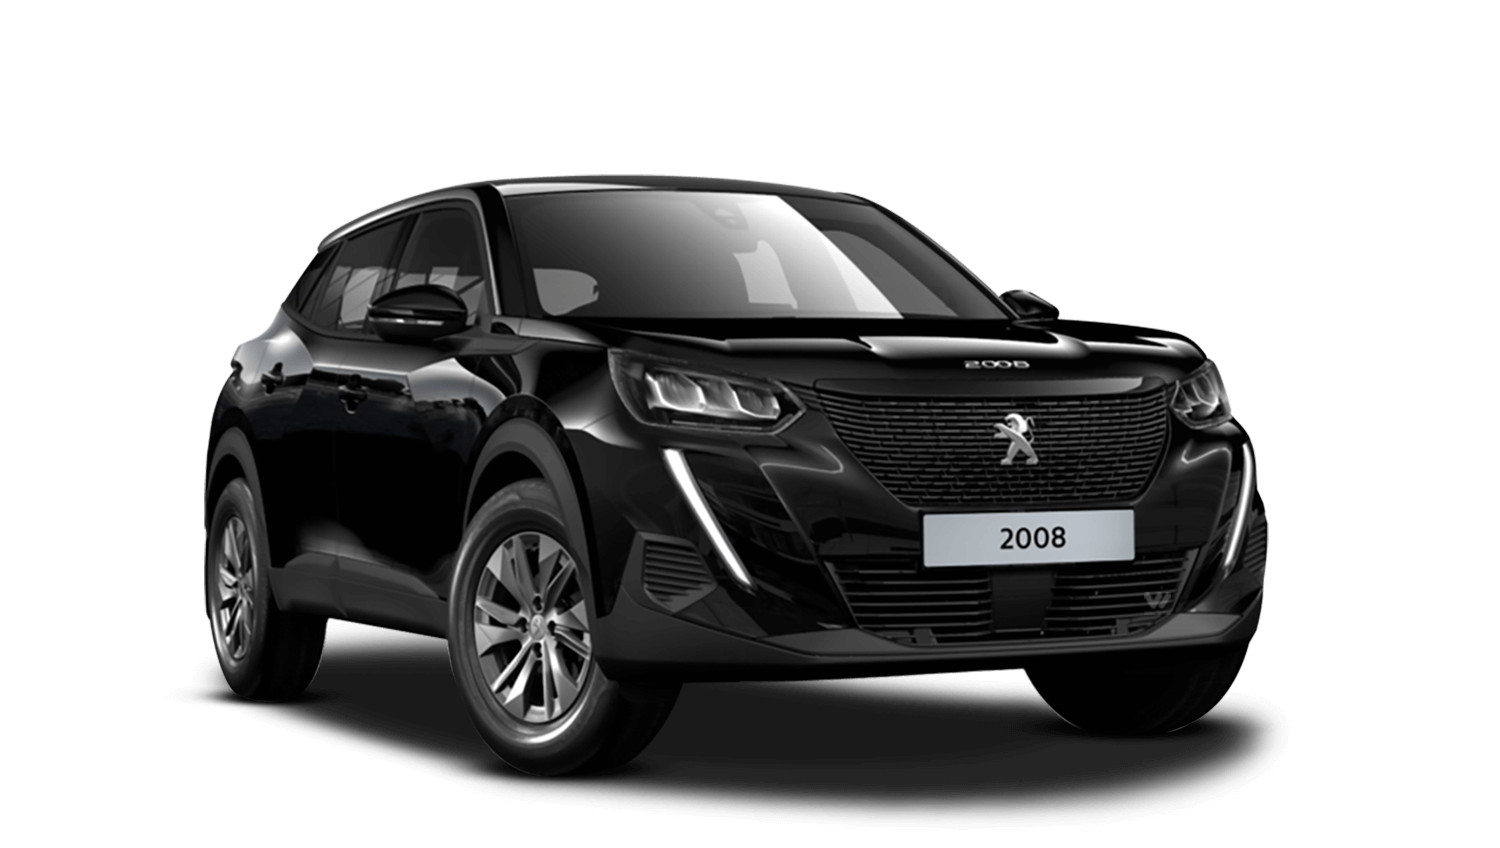 Onyx Black All-new Peugeot 2008 SUV